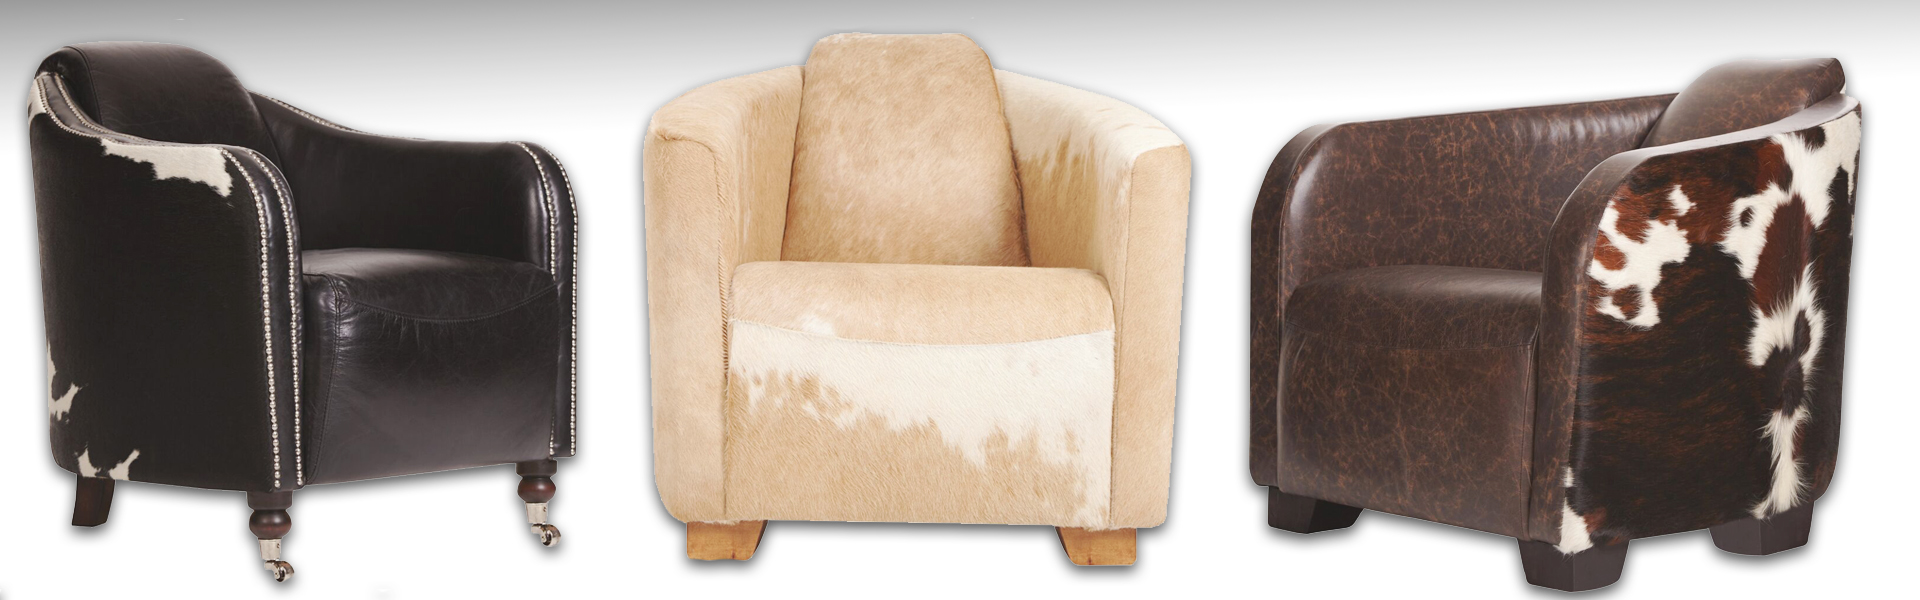 Cowhide Footstools Cow Hide Seating Dining Chairs